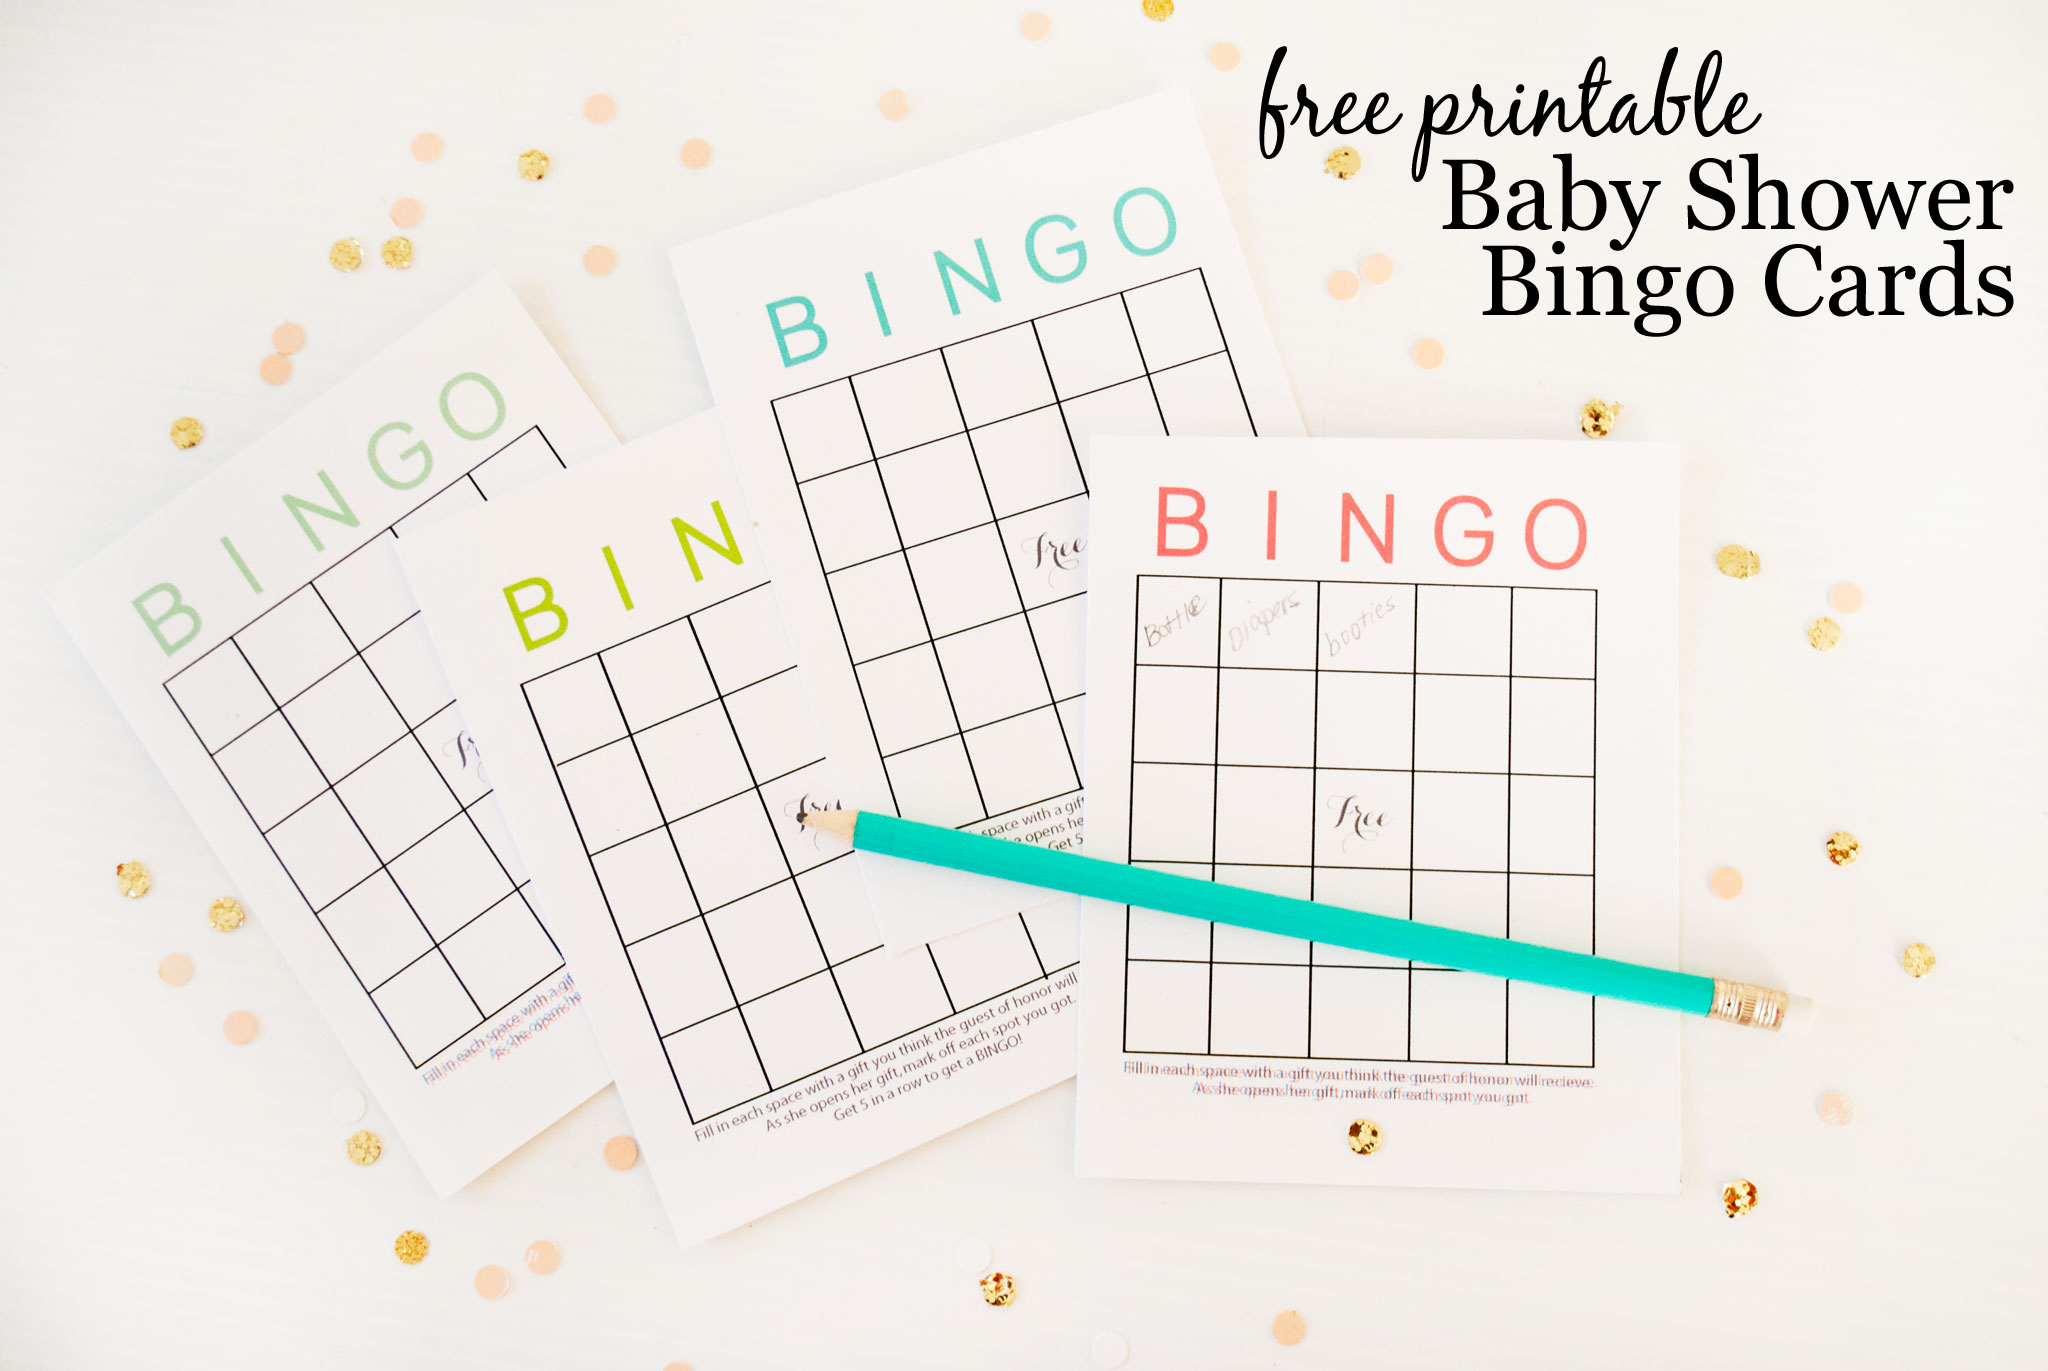 Free Printable Baby Shower Bingo Cards - Project Nursery